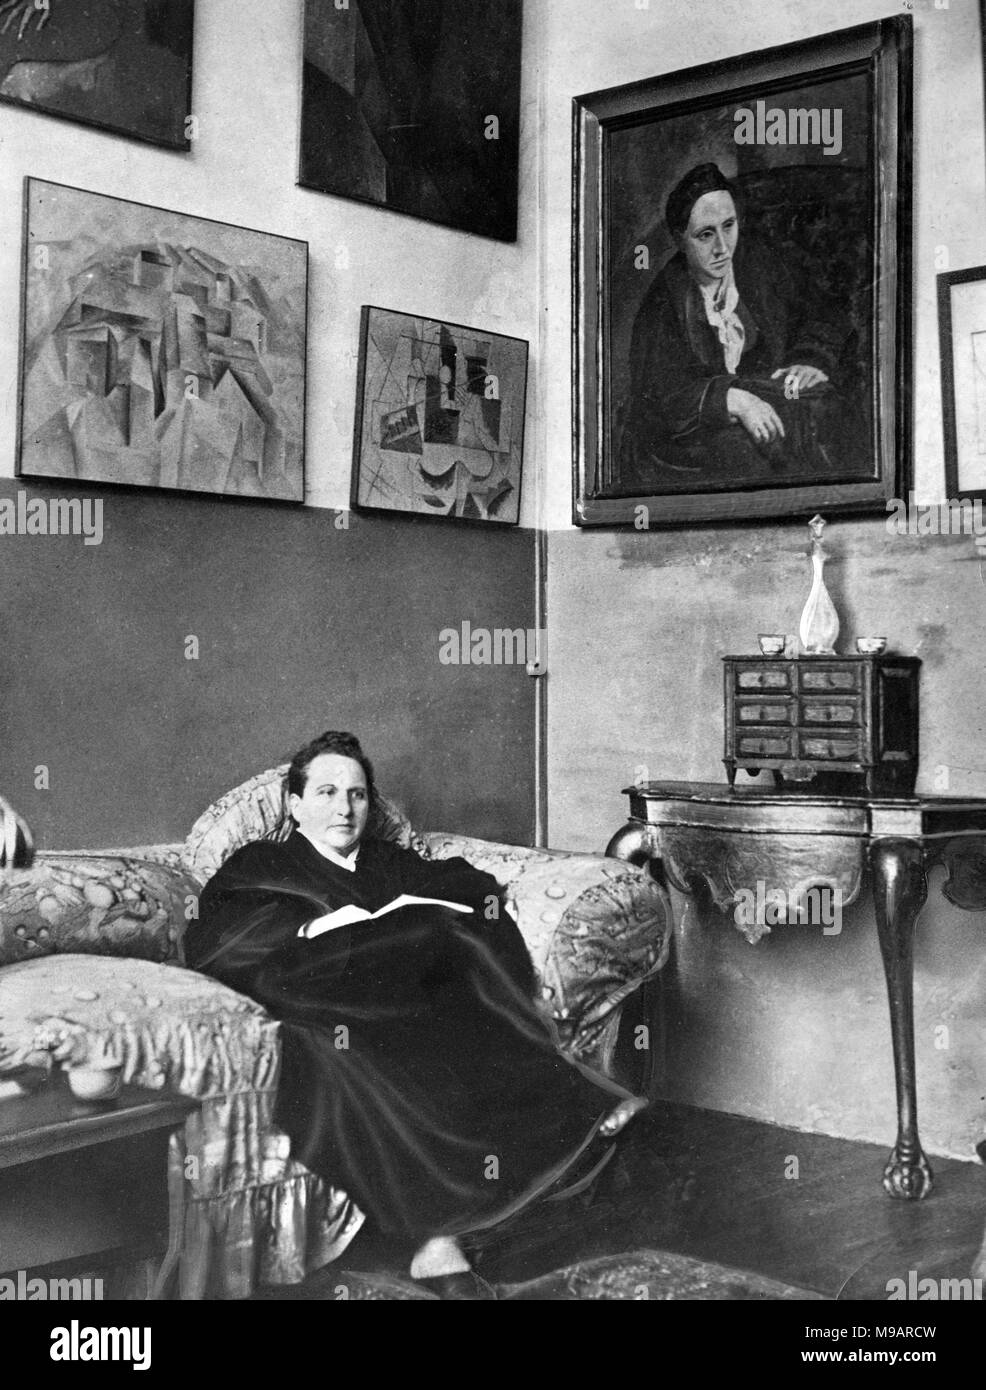 Gertrude Stein (1874-1946). Portrait of the American novelist and playwright sitting in her Paris studio with a painting of her by Picasso on the wall, c.1930. - Stock Image